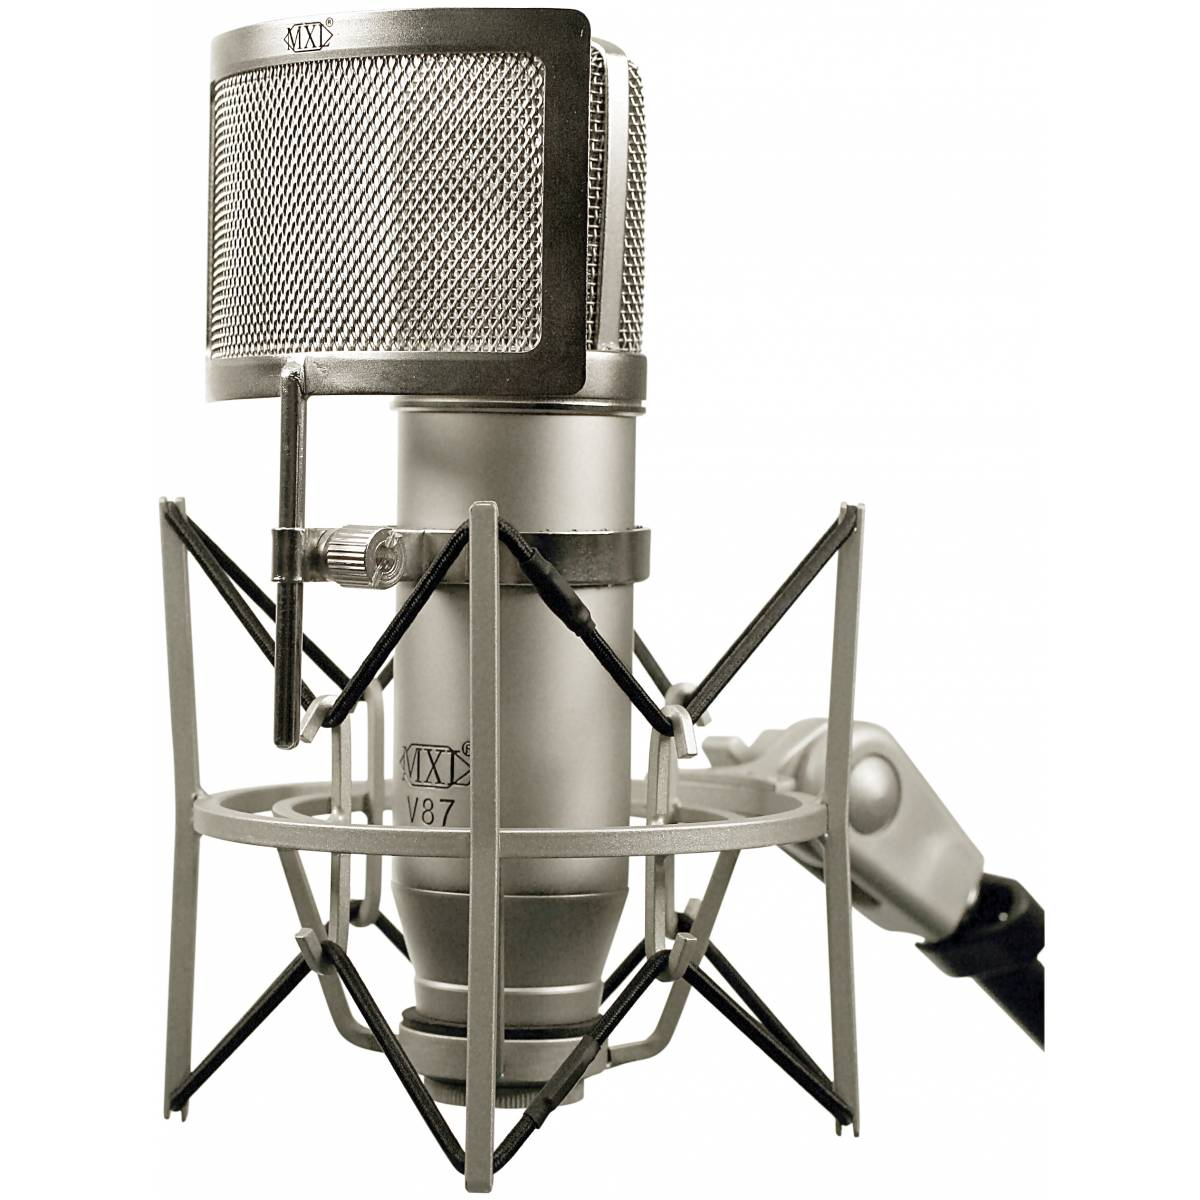 Mxl Mxl V87 Condenser Microphone P4578 also Simple Switched Power Supplies together with Cygnus X1 Wooden Pc Case together with 555 Schmitt Trigger Inverting in addition 10v To 350v Adjustable Regulator Dc Power Supply. on electronic transformer